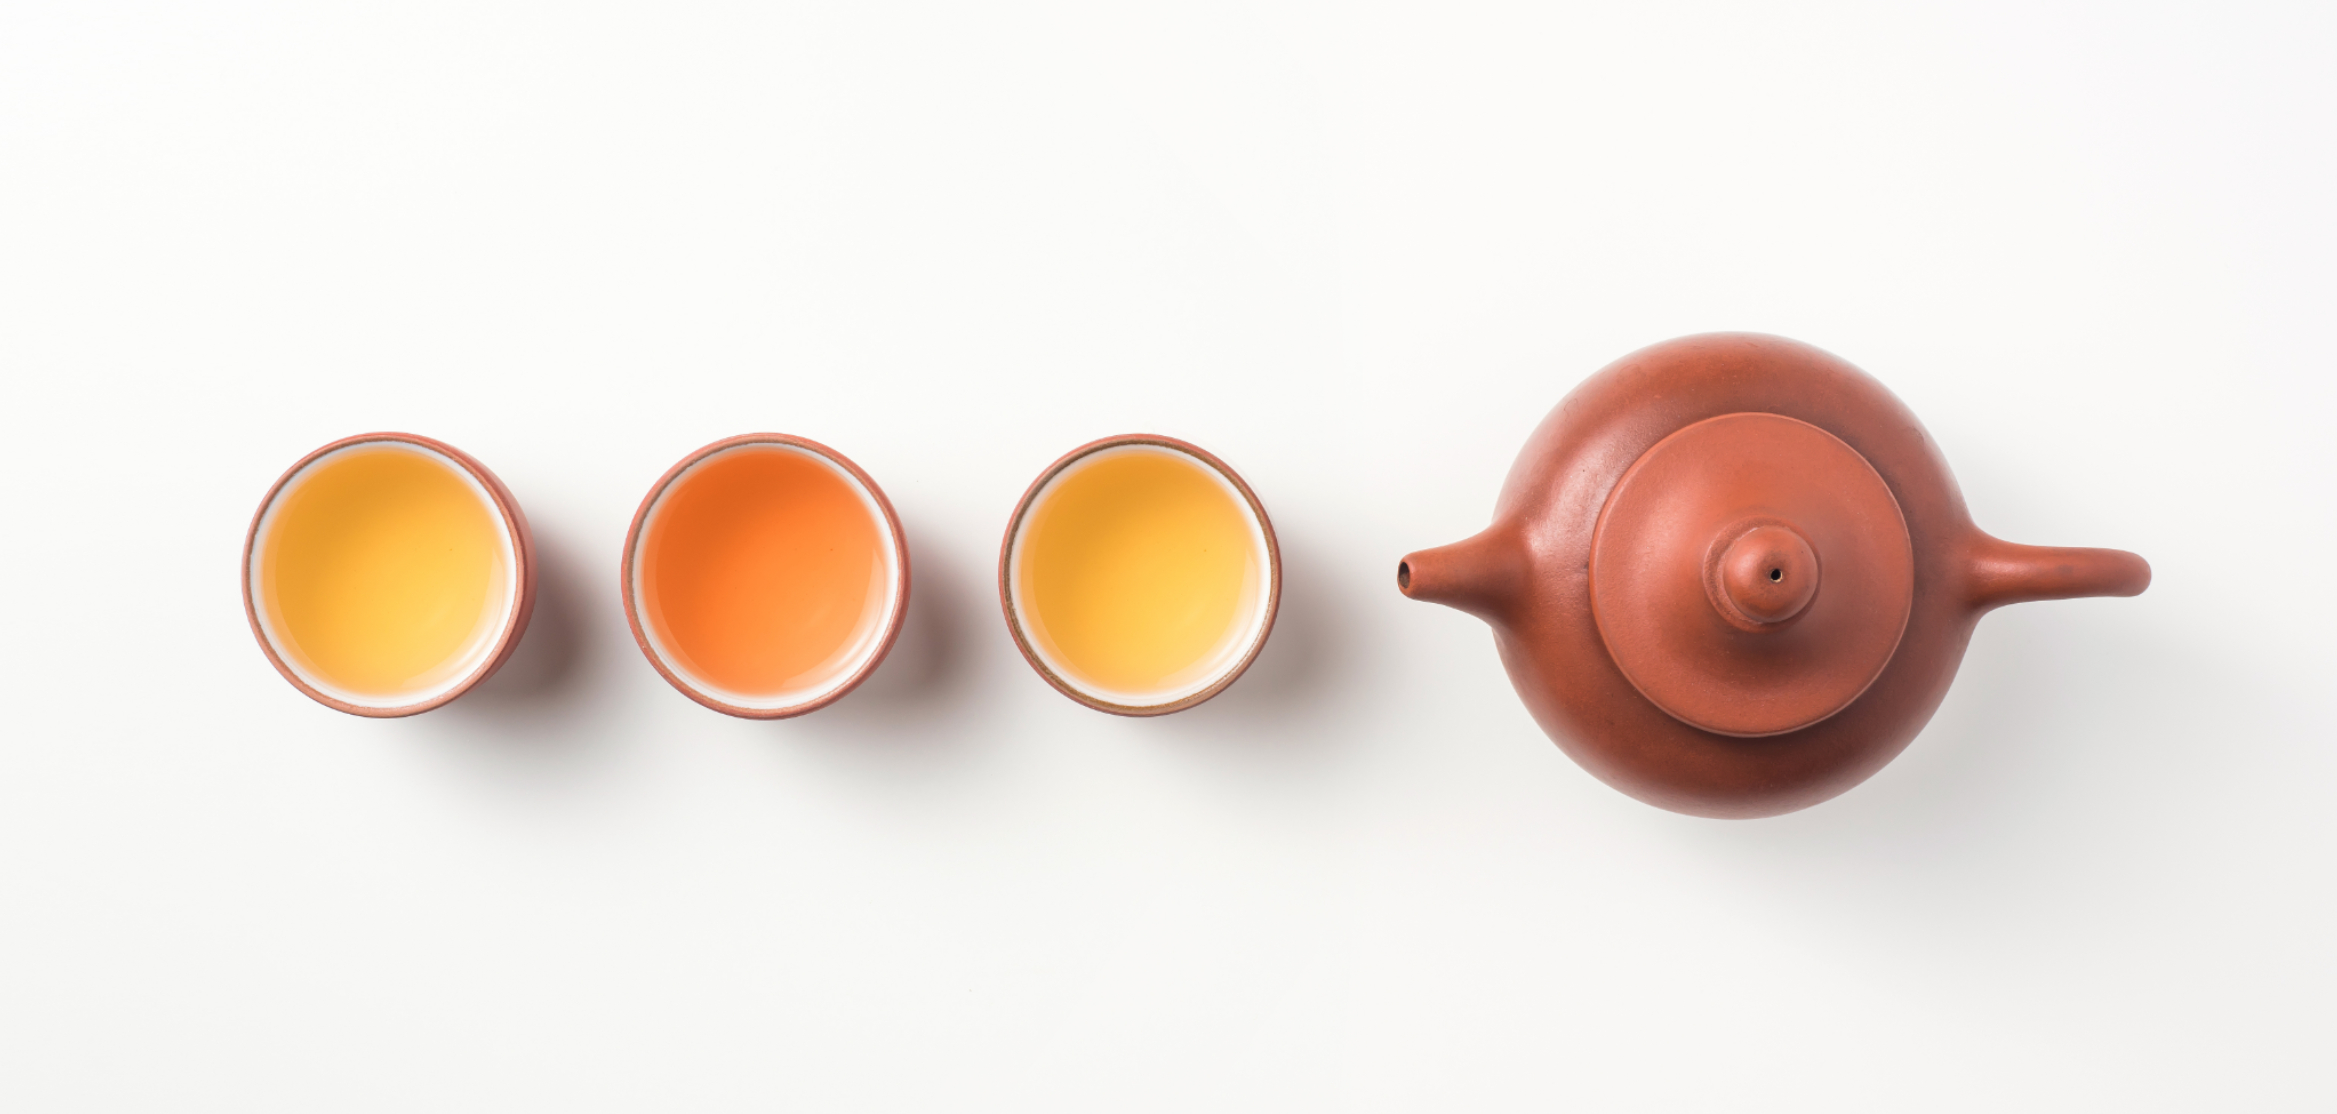 What is a teapot and how to use it?